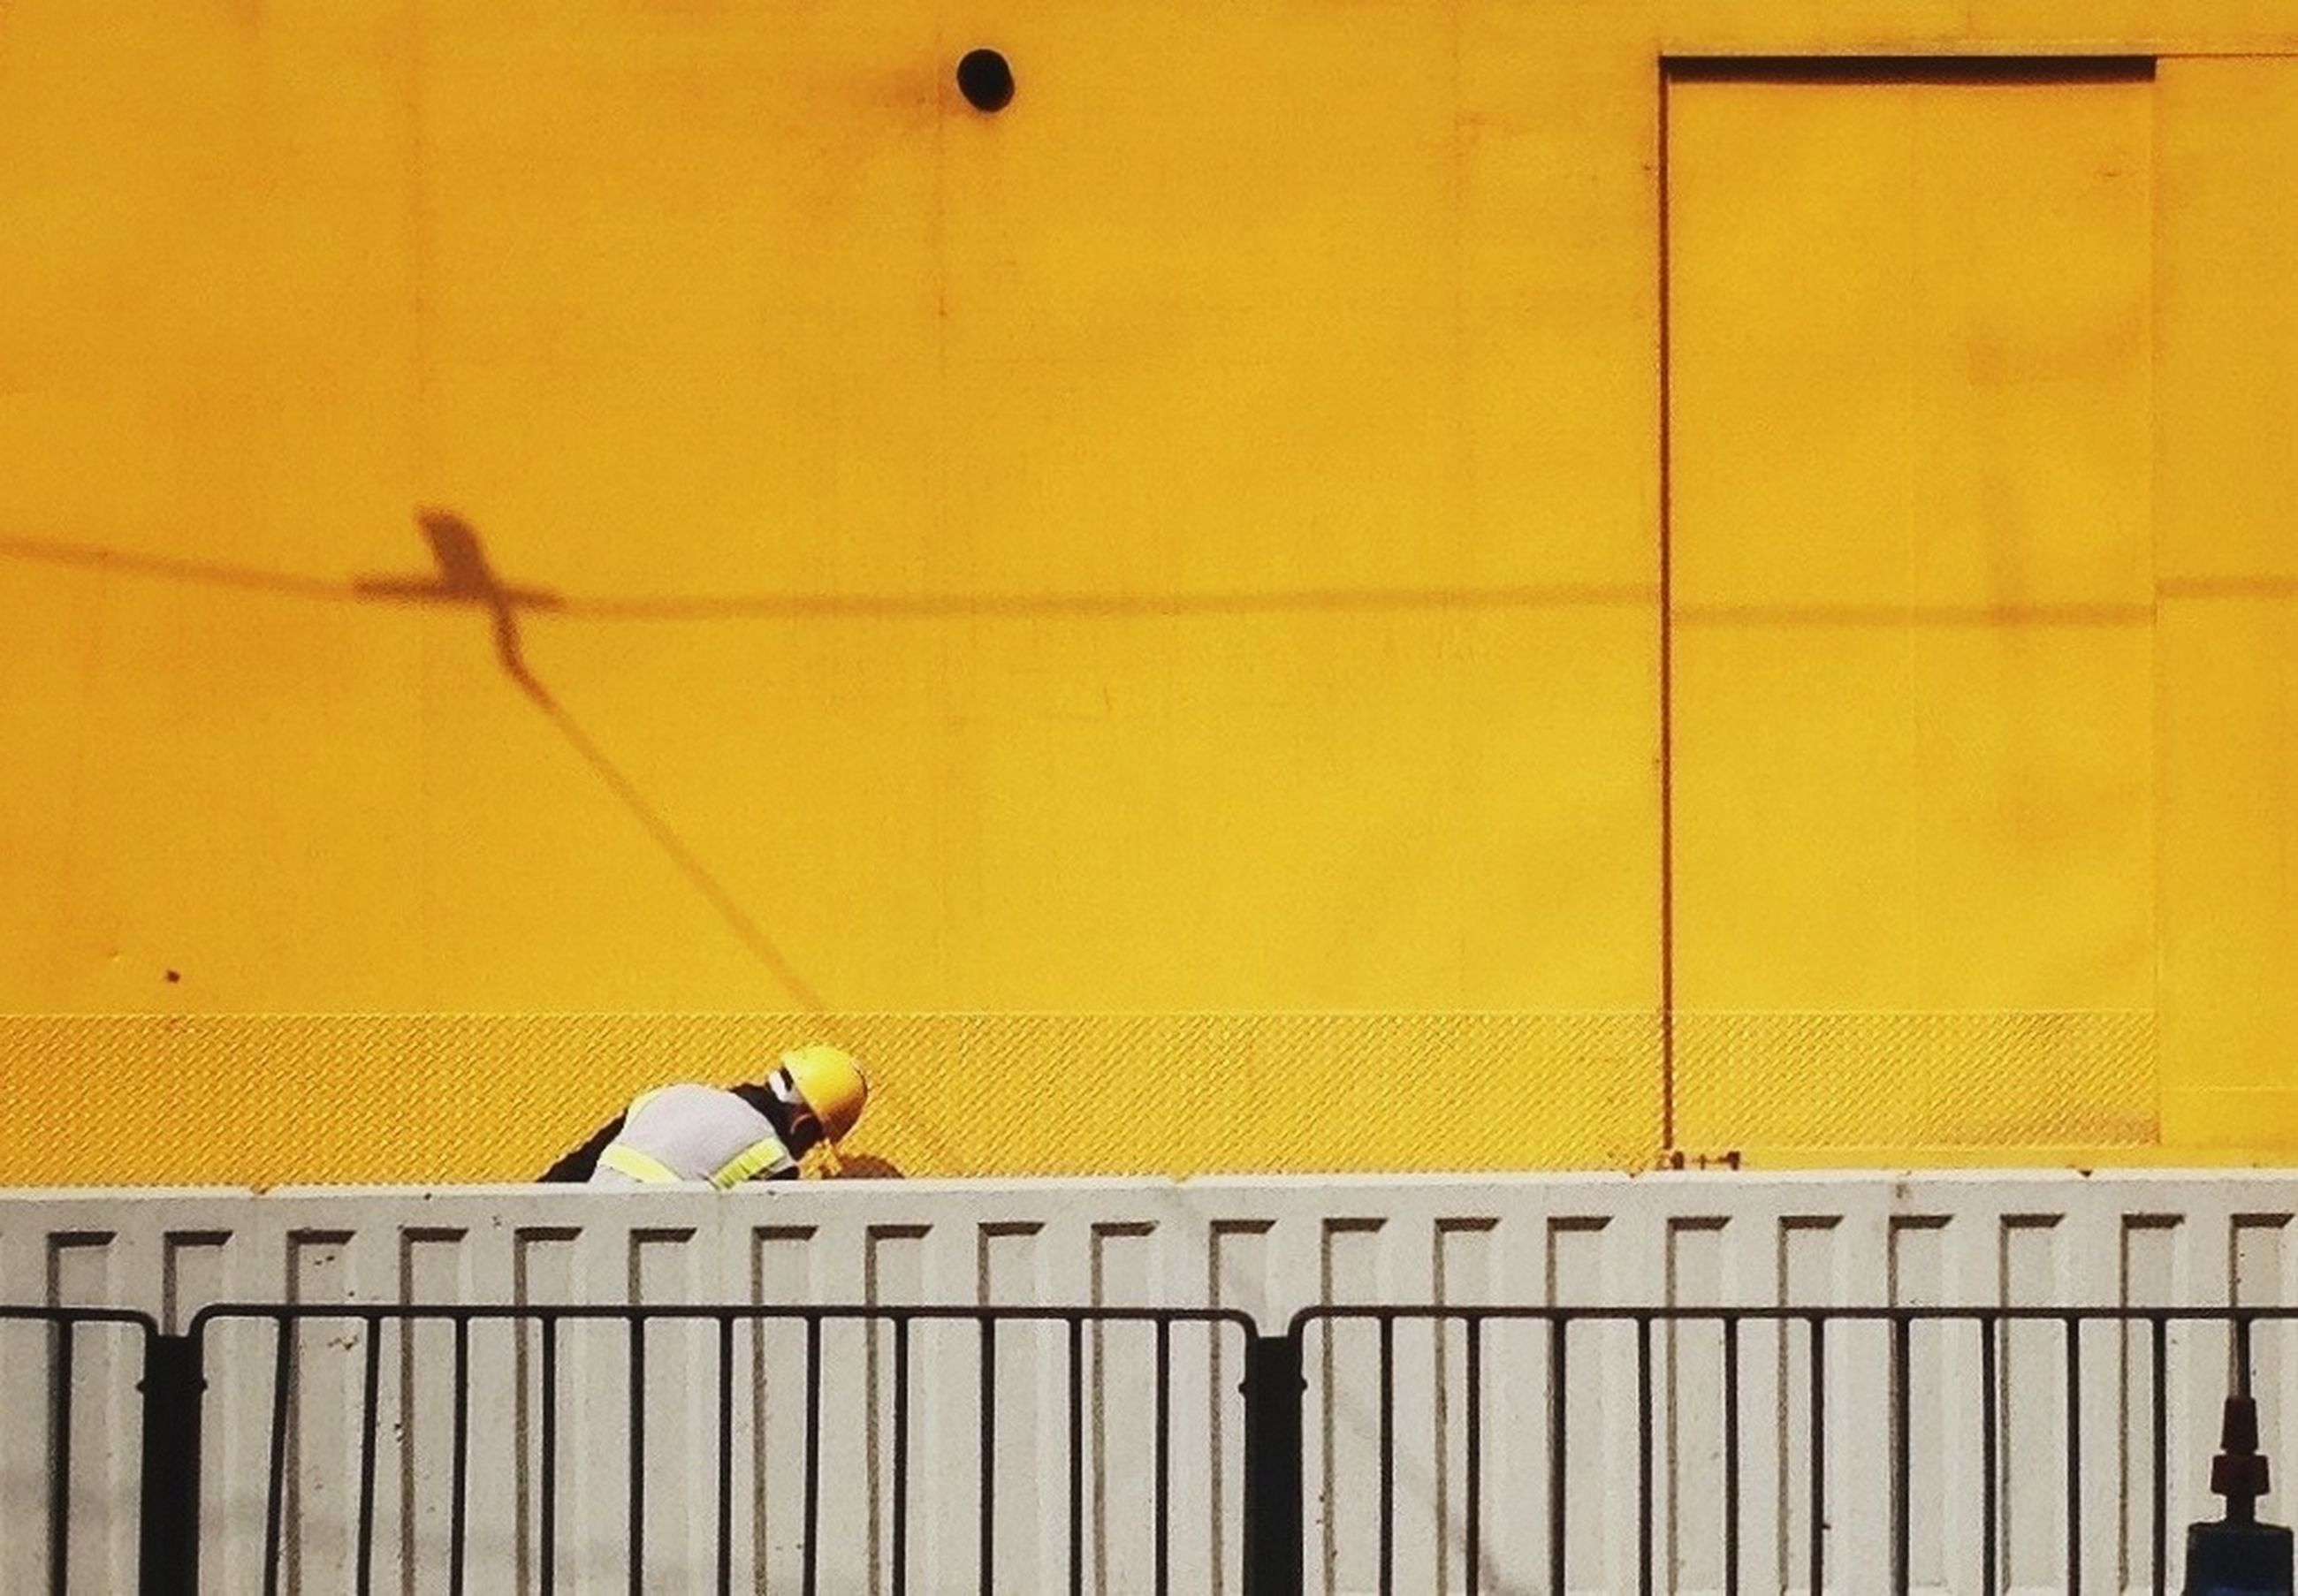 animal themes, one animal, yellow, railing, bird, built structure, architecture, wildlife, wall - building feature, animals in the wild, perching, building exterior, steps, full length, pets, low angle view, one person, wall, domestic animals, side view